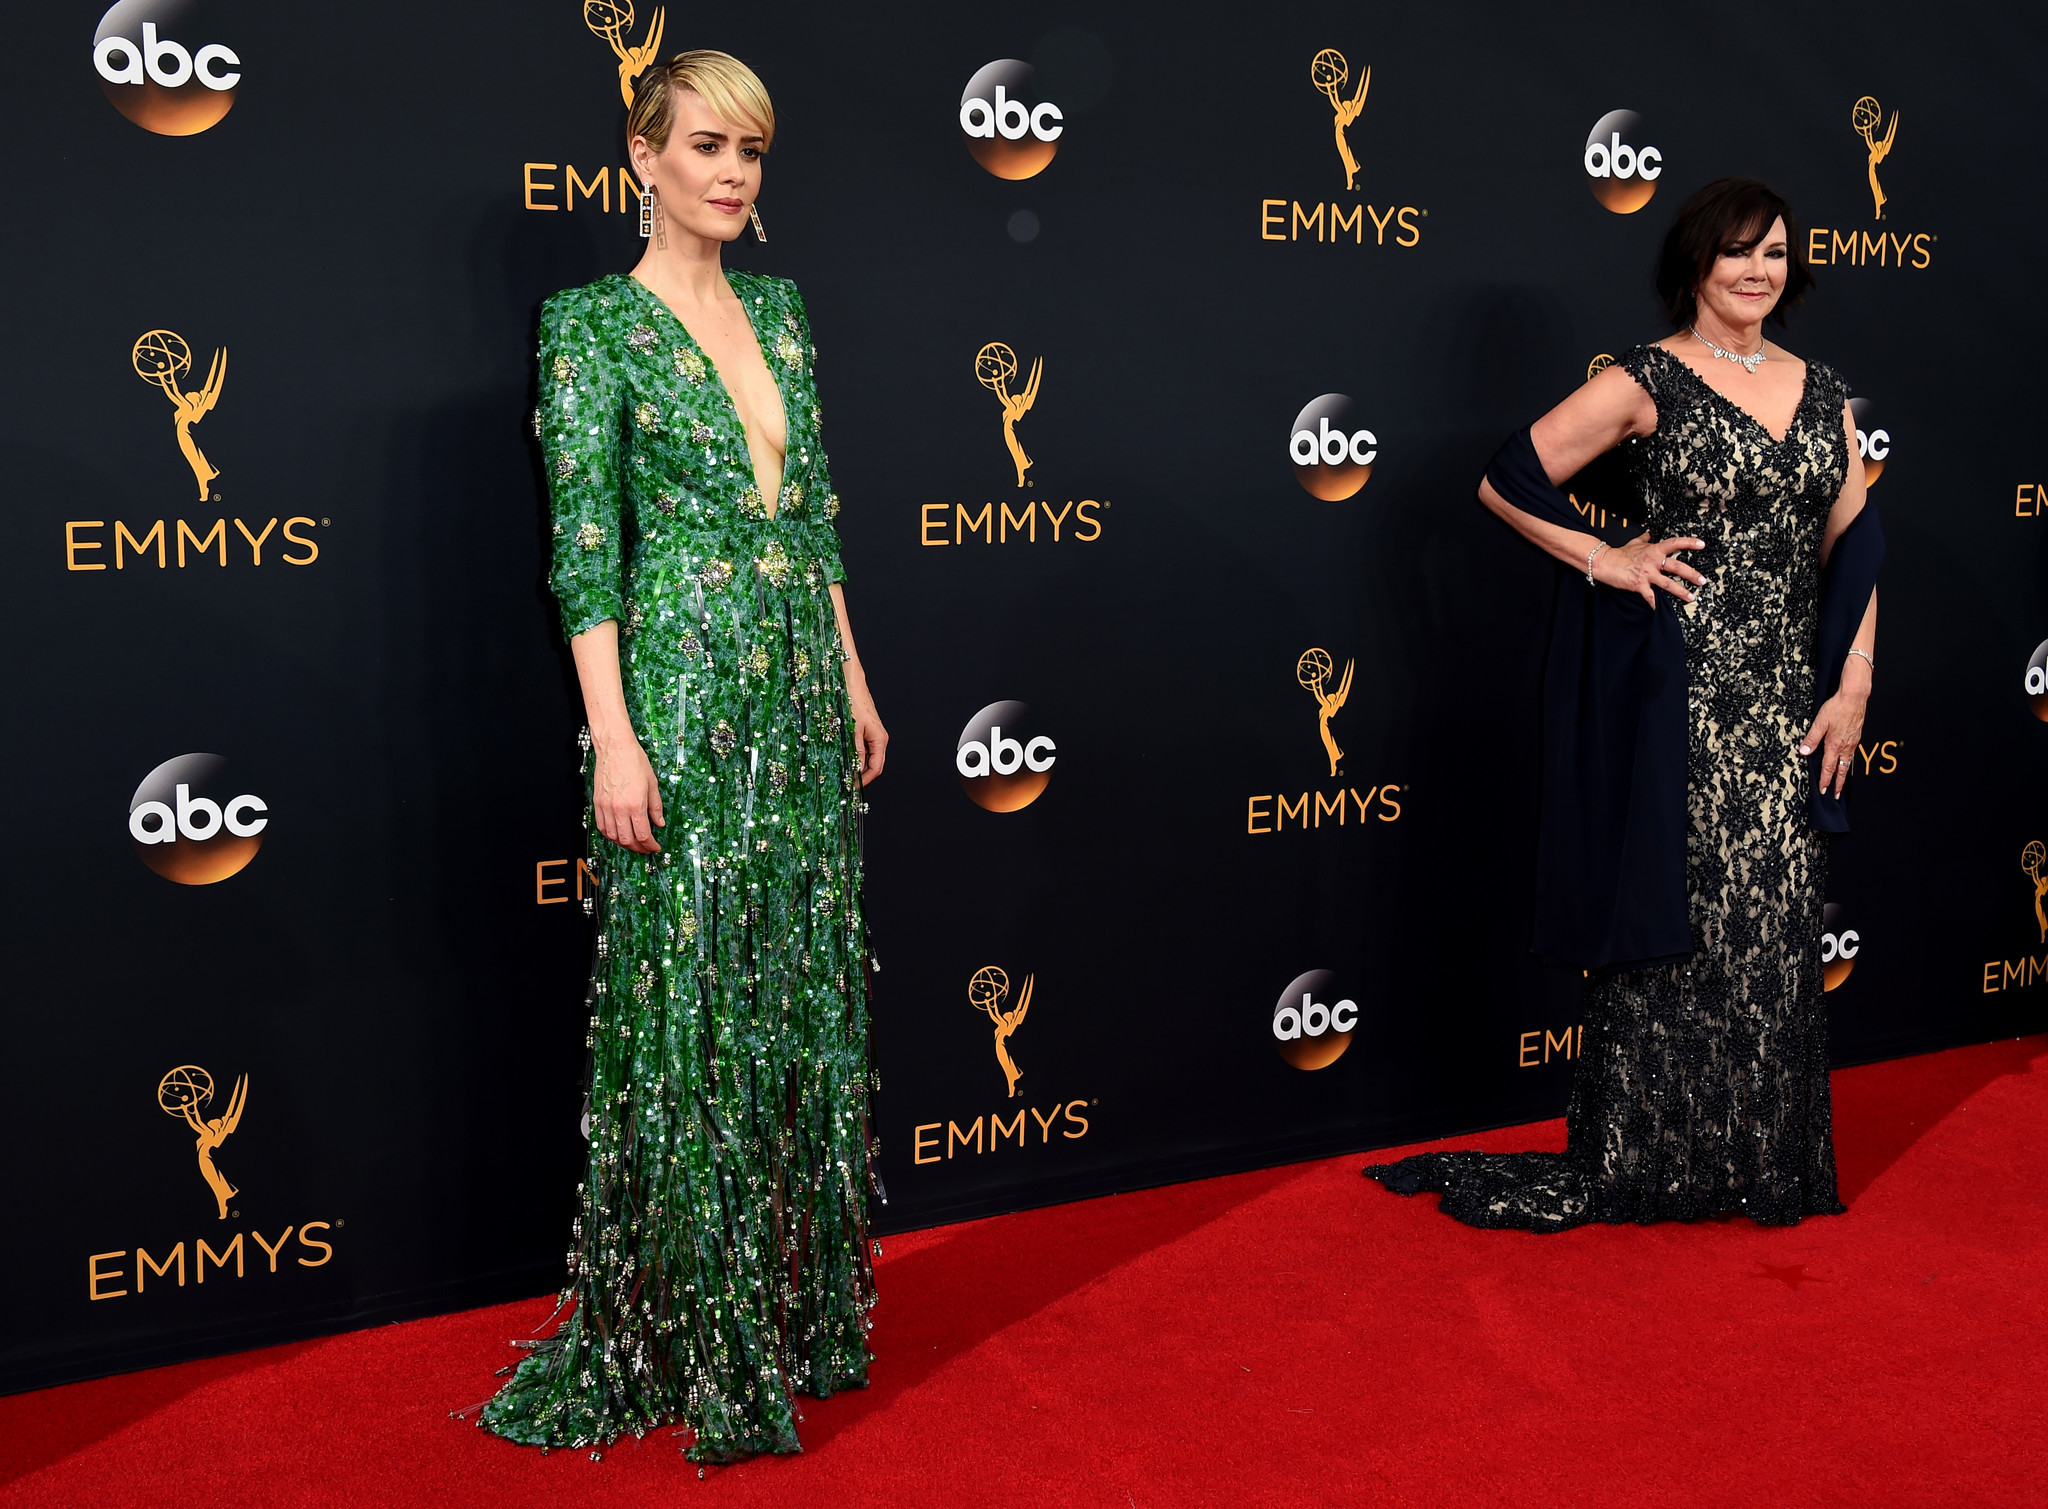 Will politics, social issues influence Emmy Awards?